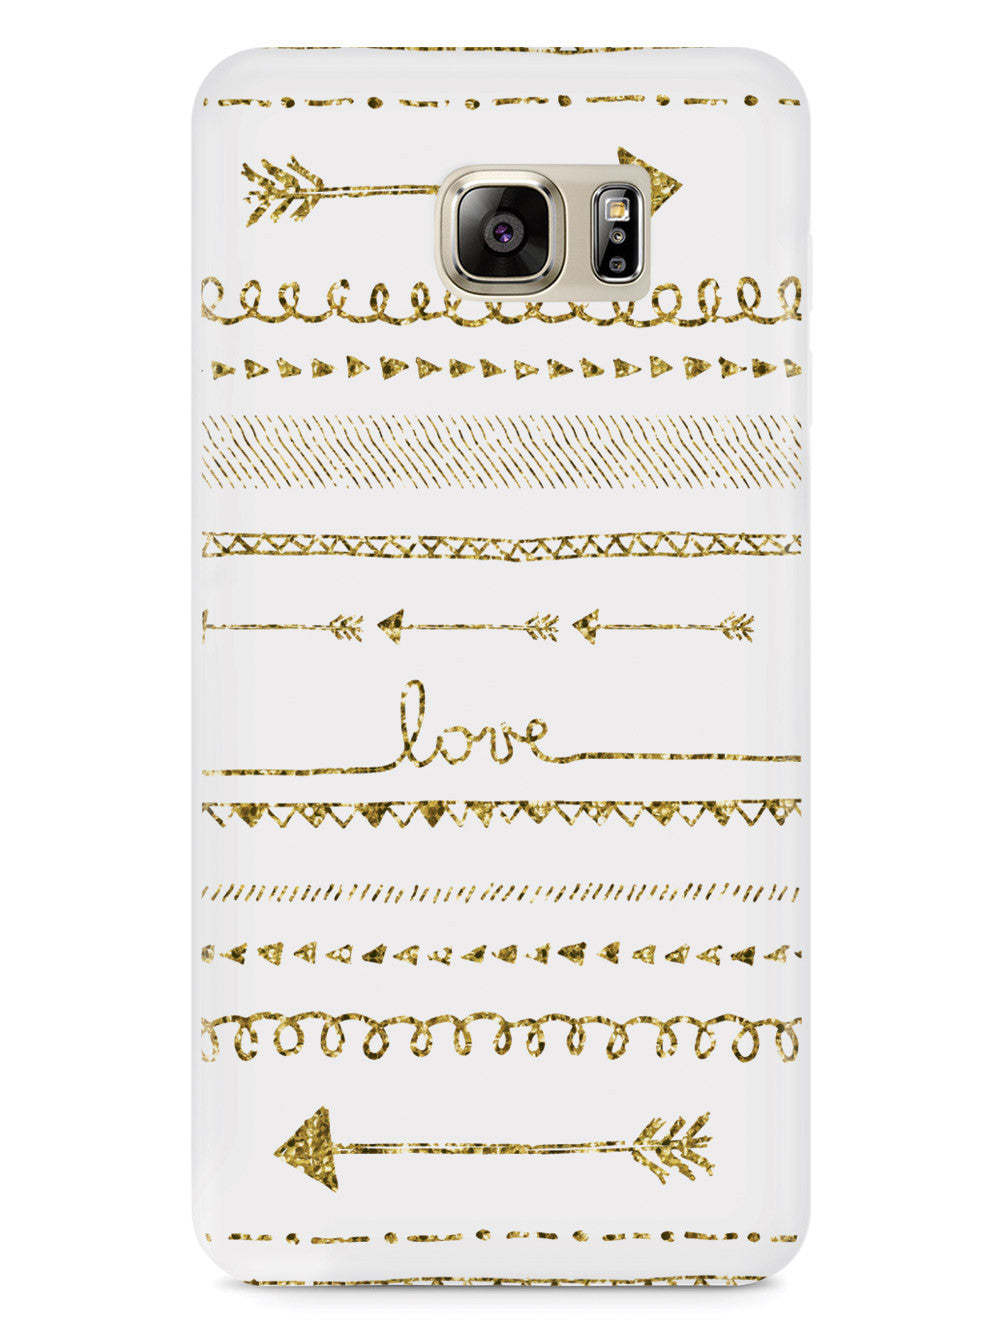 Glitter Doodle Arrows Hand Drawn Case